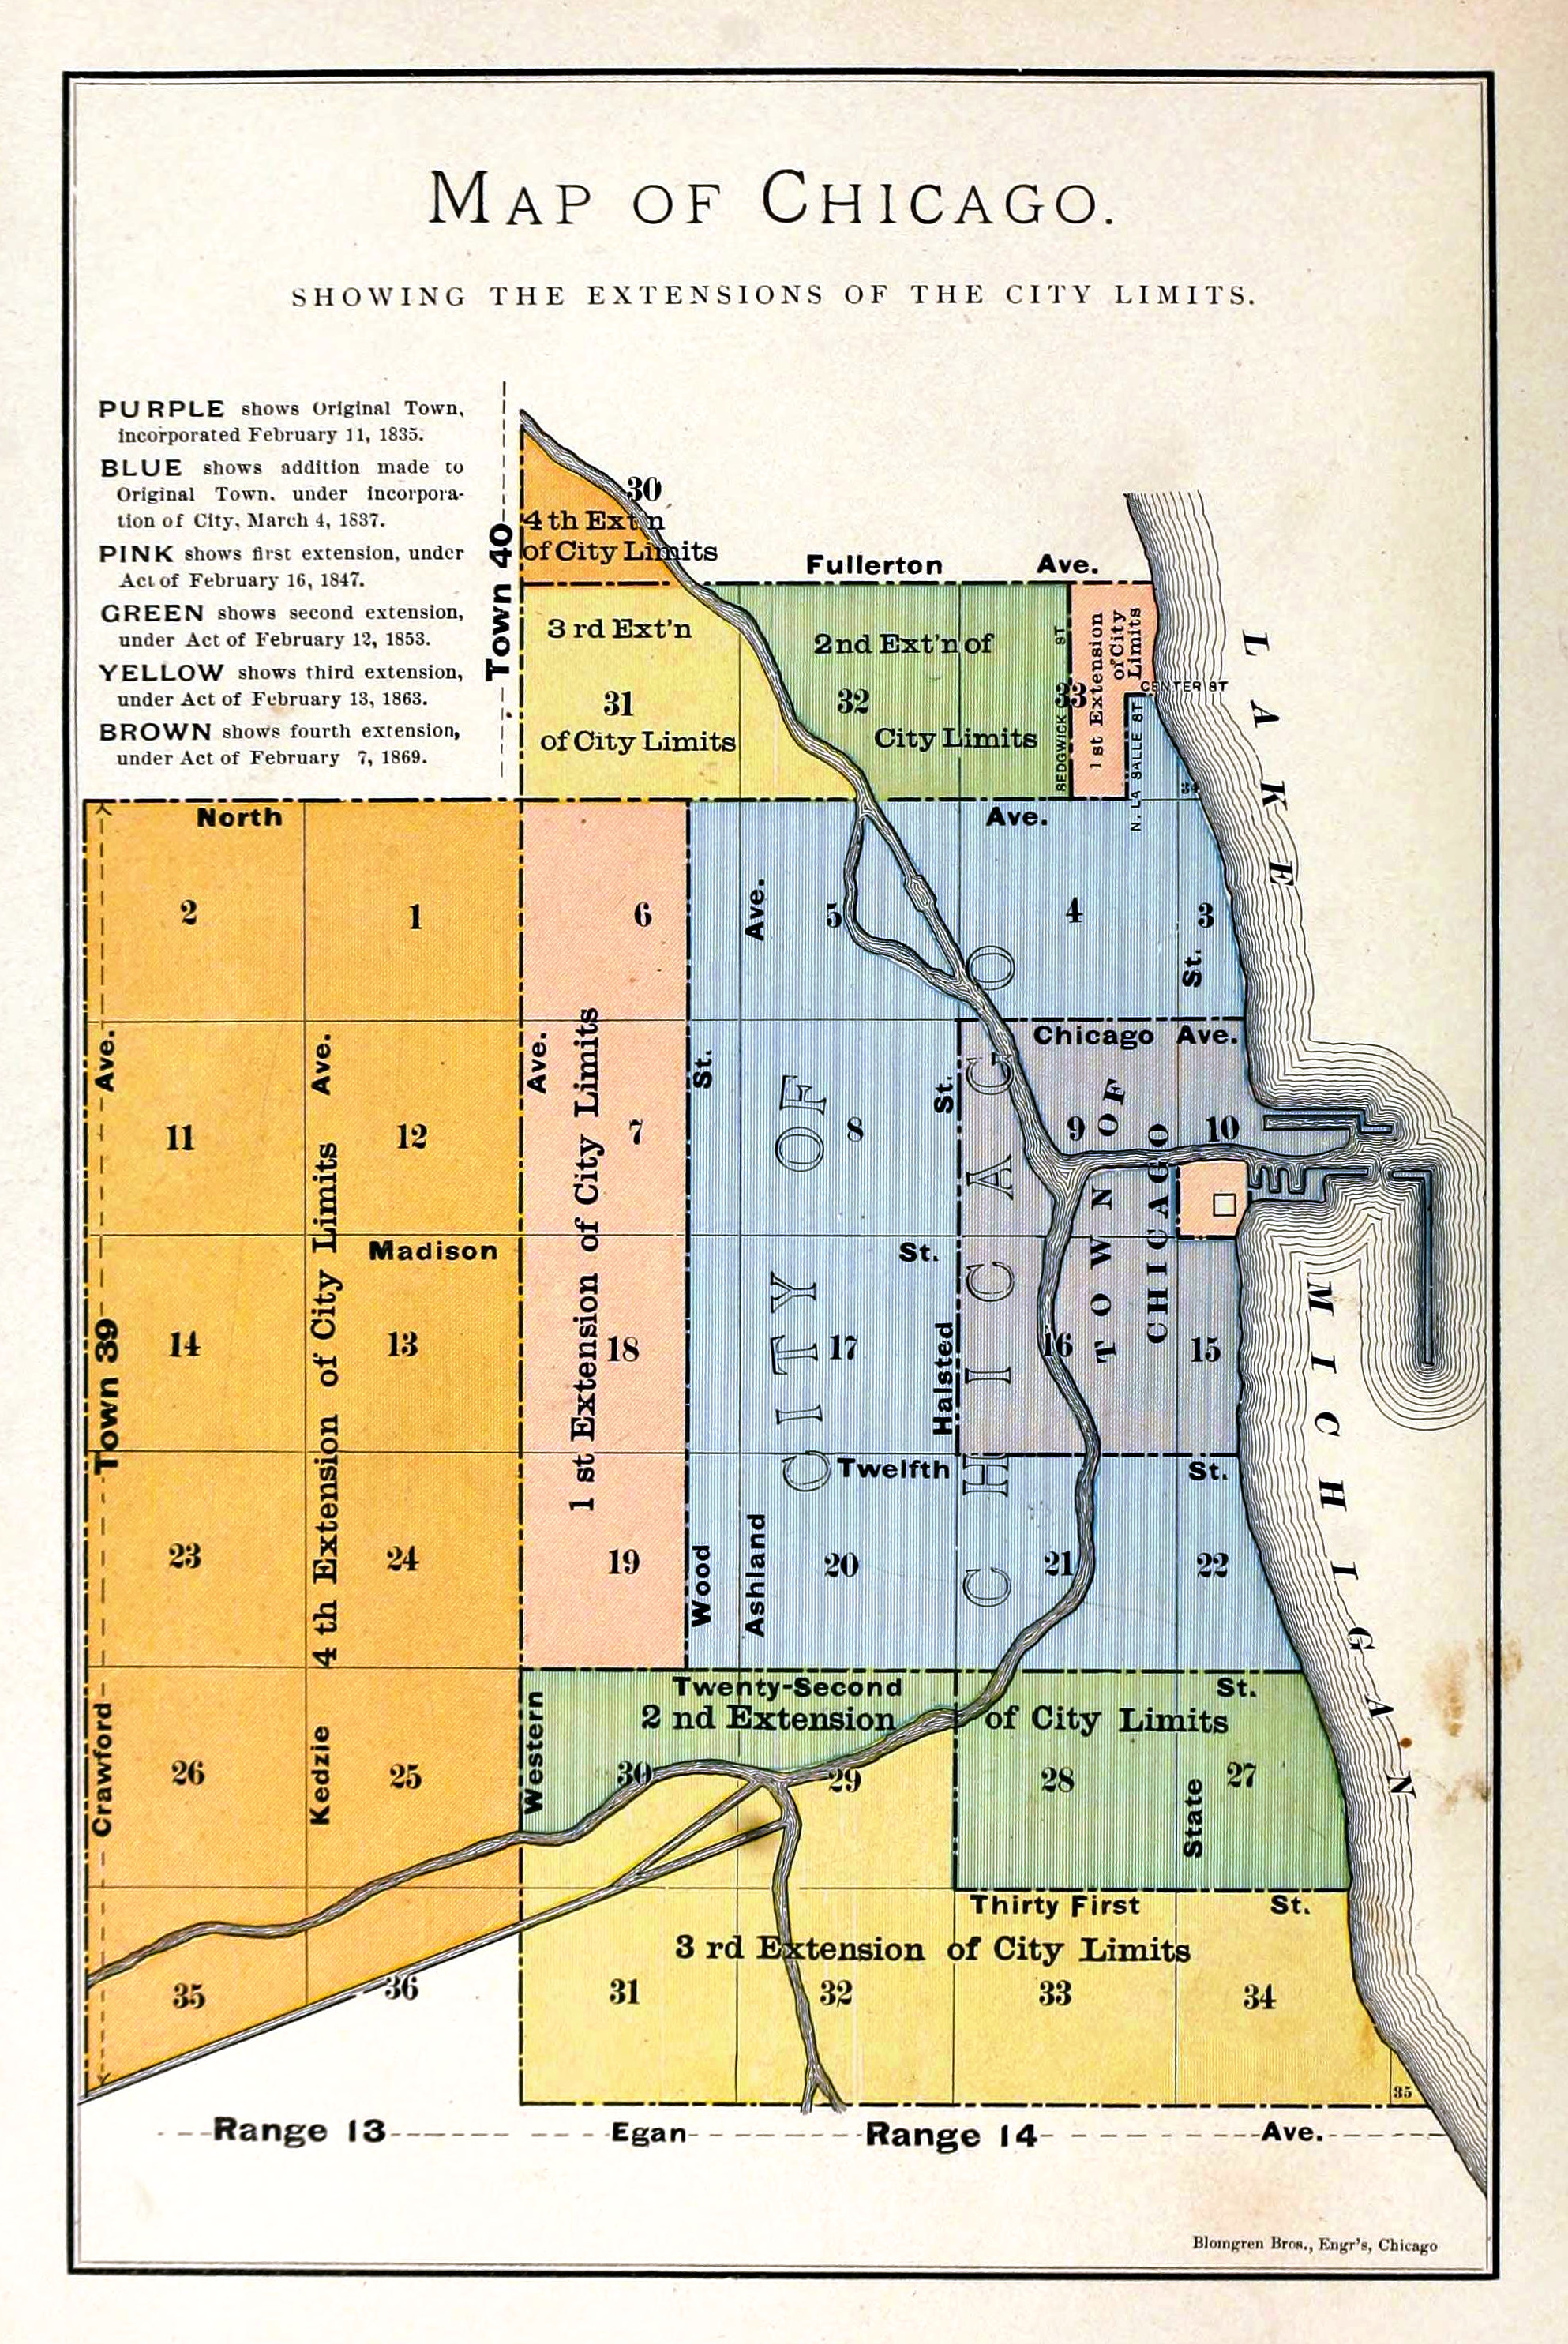 Extensions to city limits through 1884